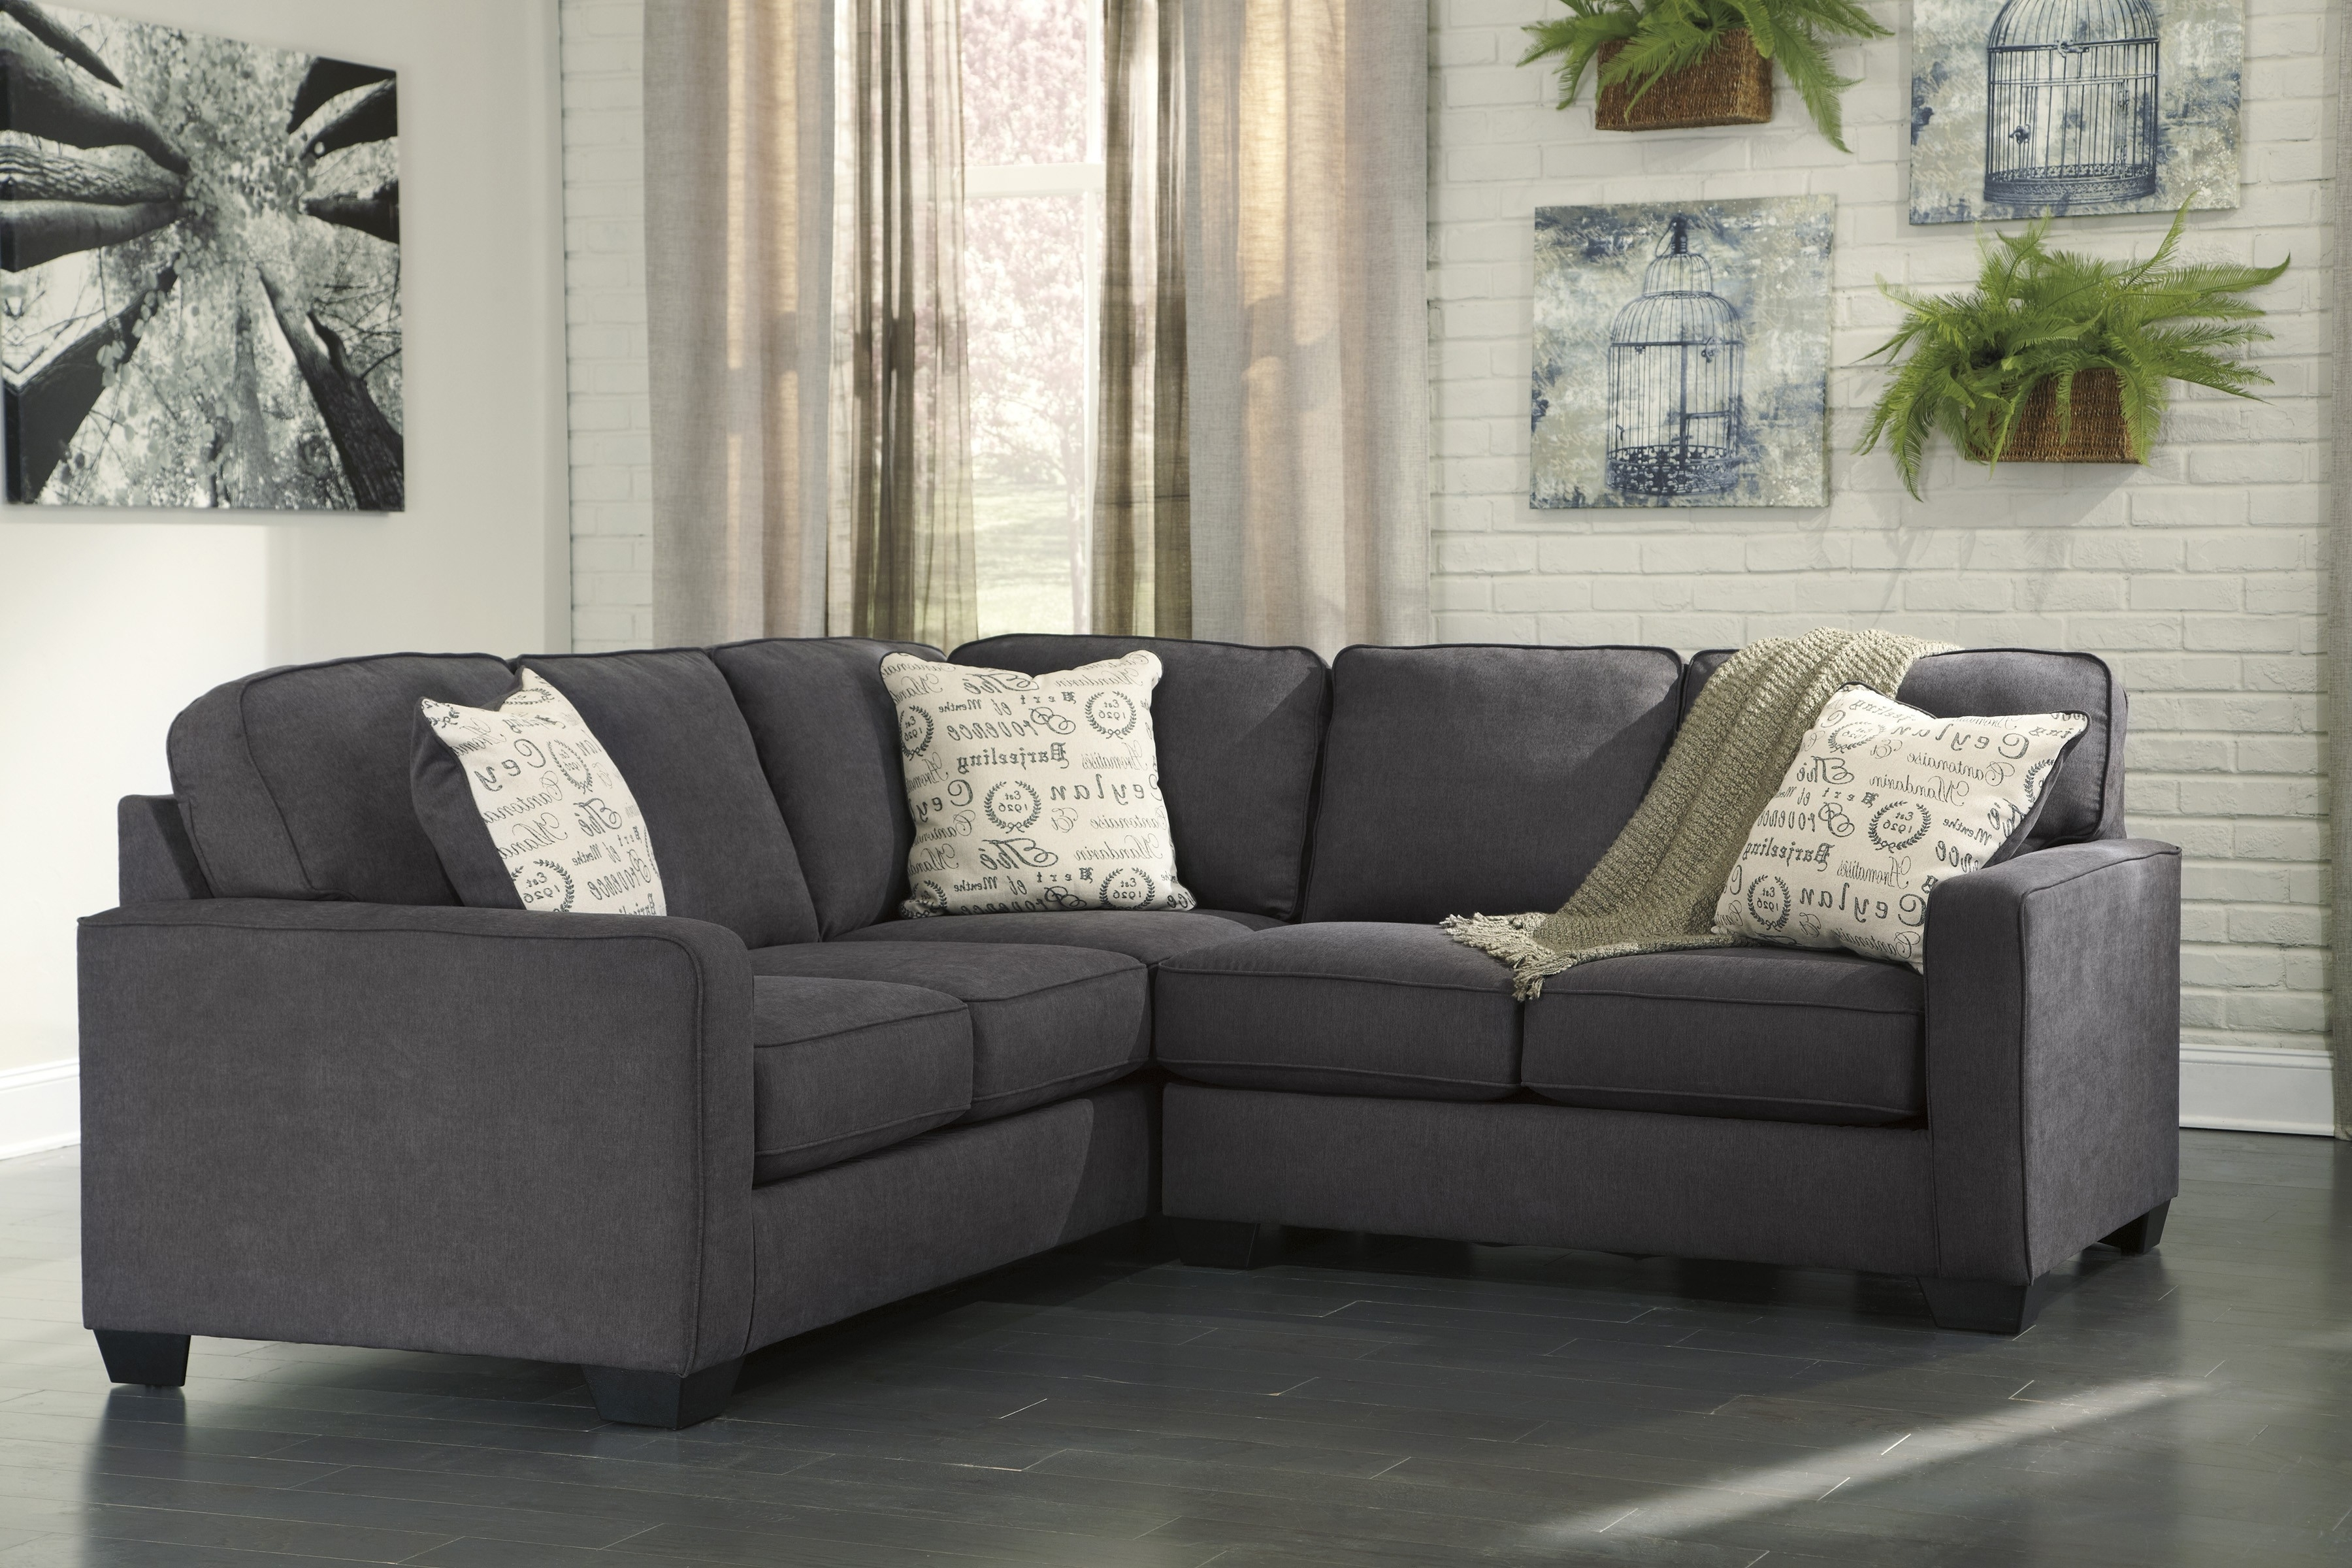 Alenya Charcoal Piece Sectional Sofa For Furnitureusa Raf Love Tures inside Aspen 2 Piece Sectionals With Laf Chaise (Image 1 of 30)